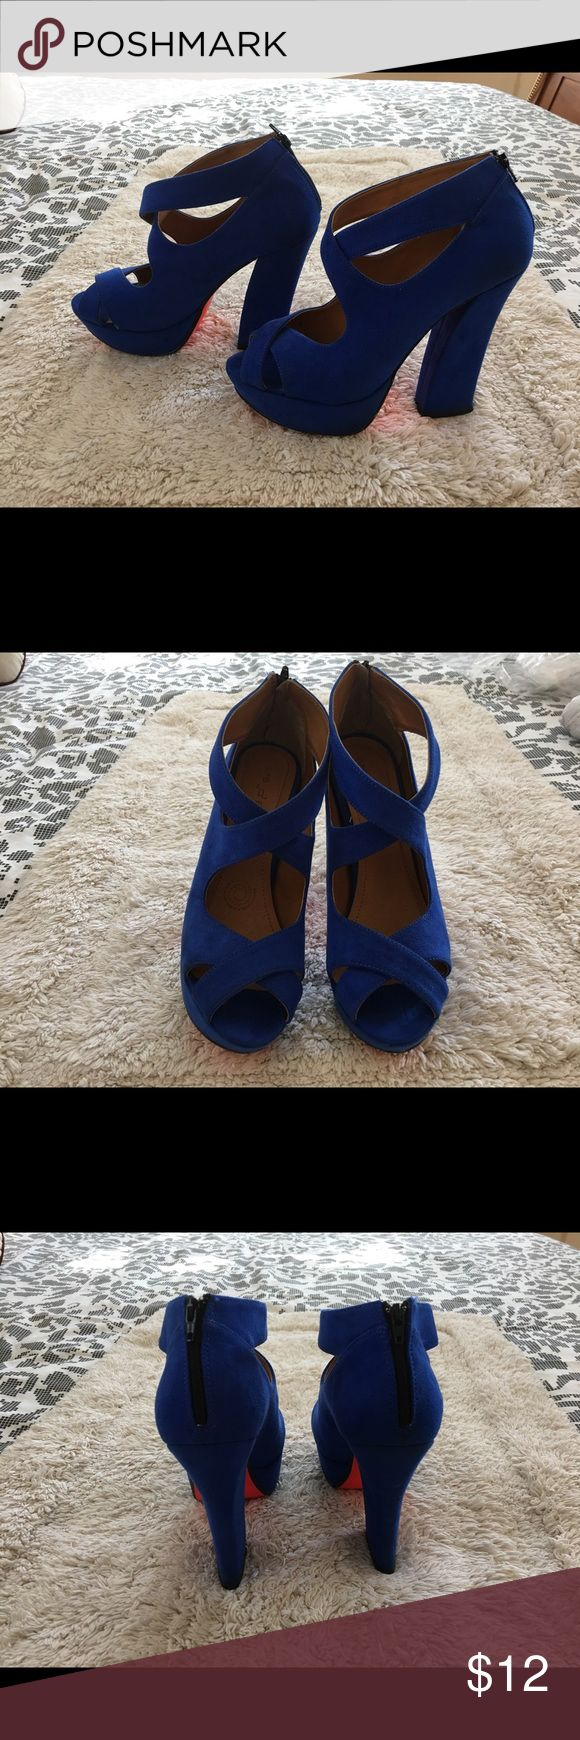 Royal blue pumps Suede royal blue heels, size 7, good condition. Shoes Heels